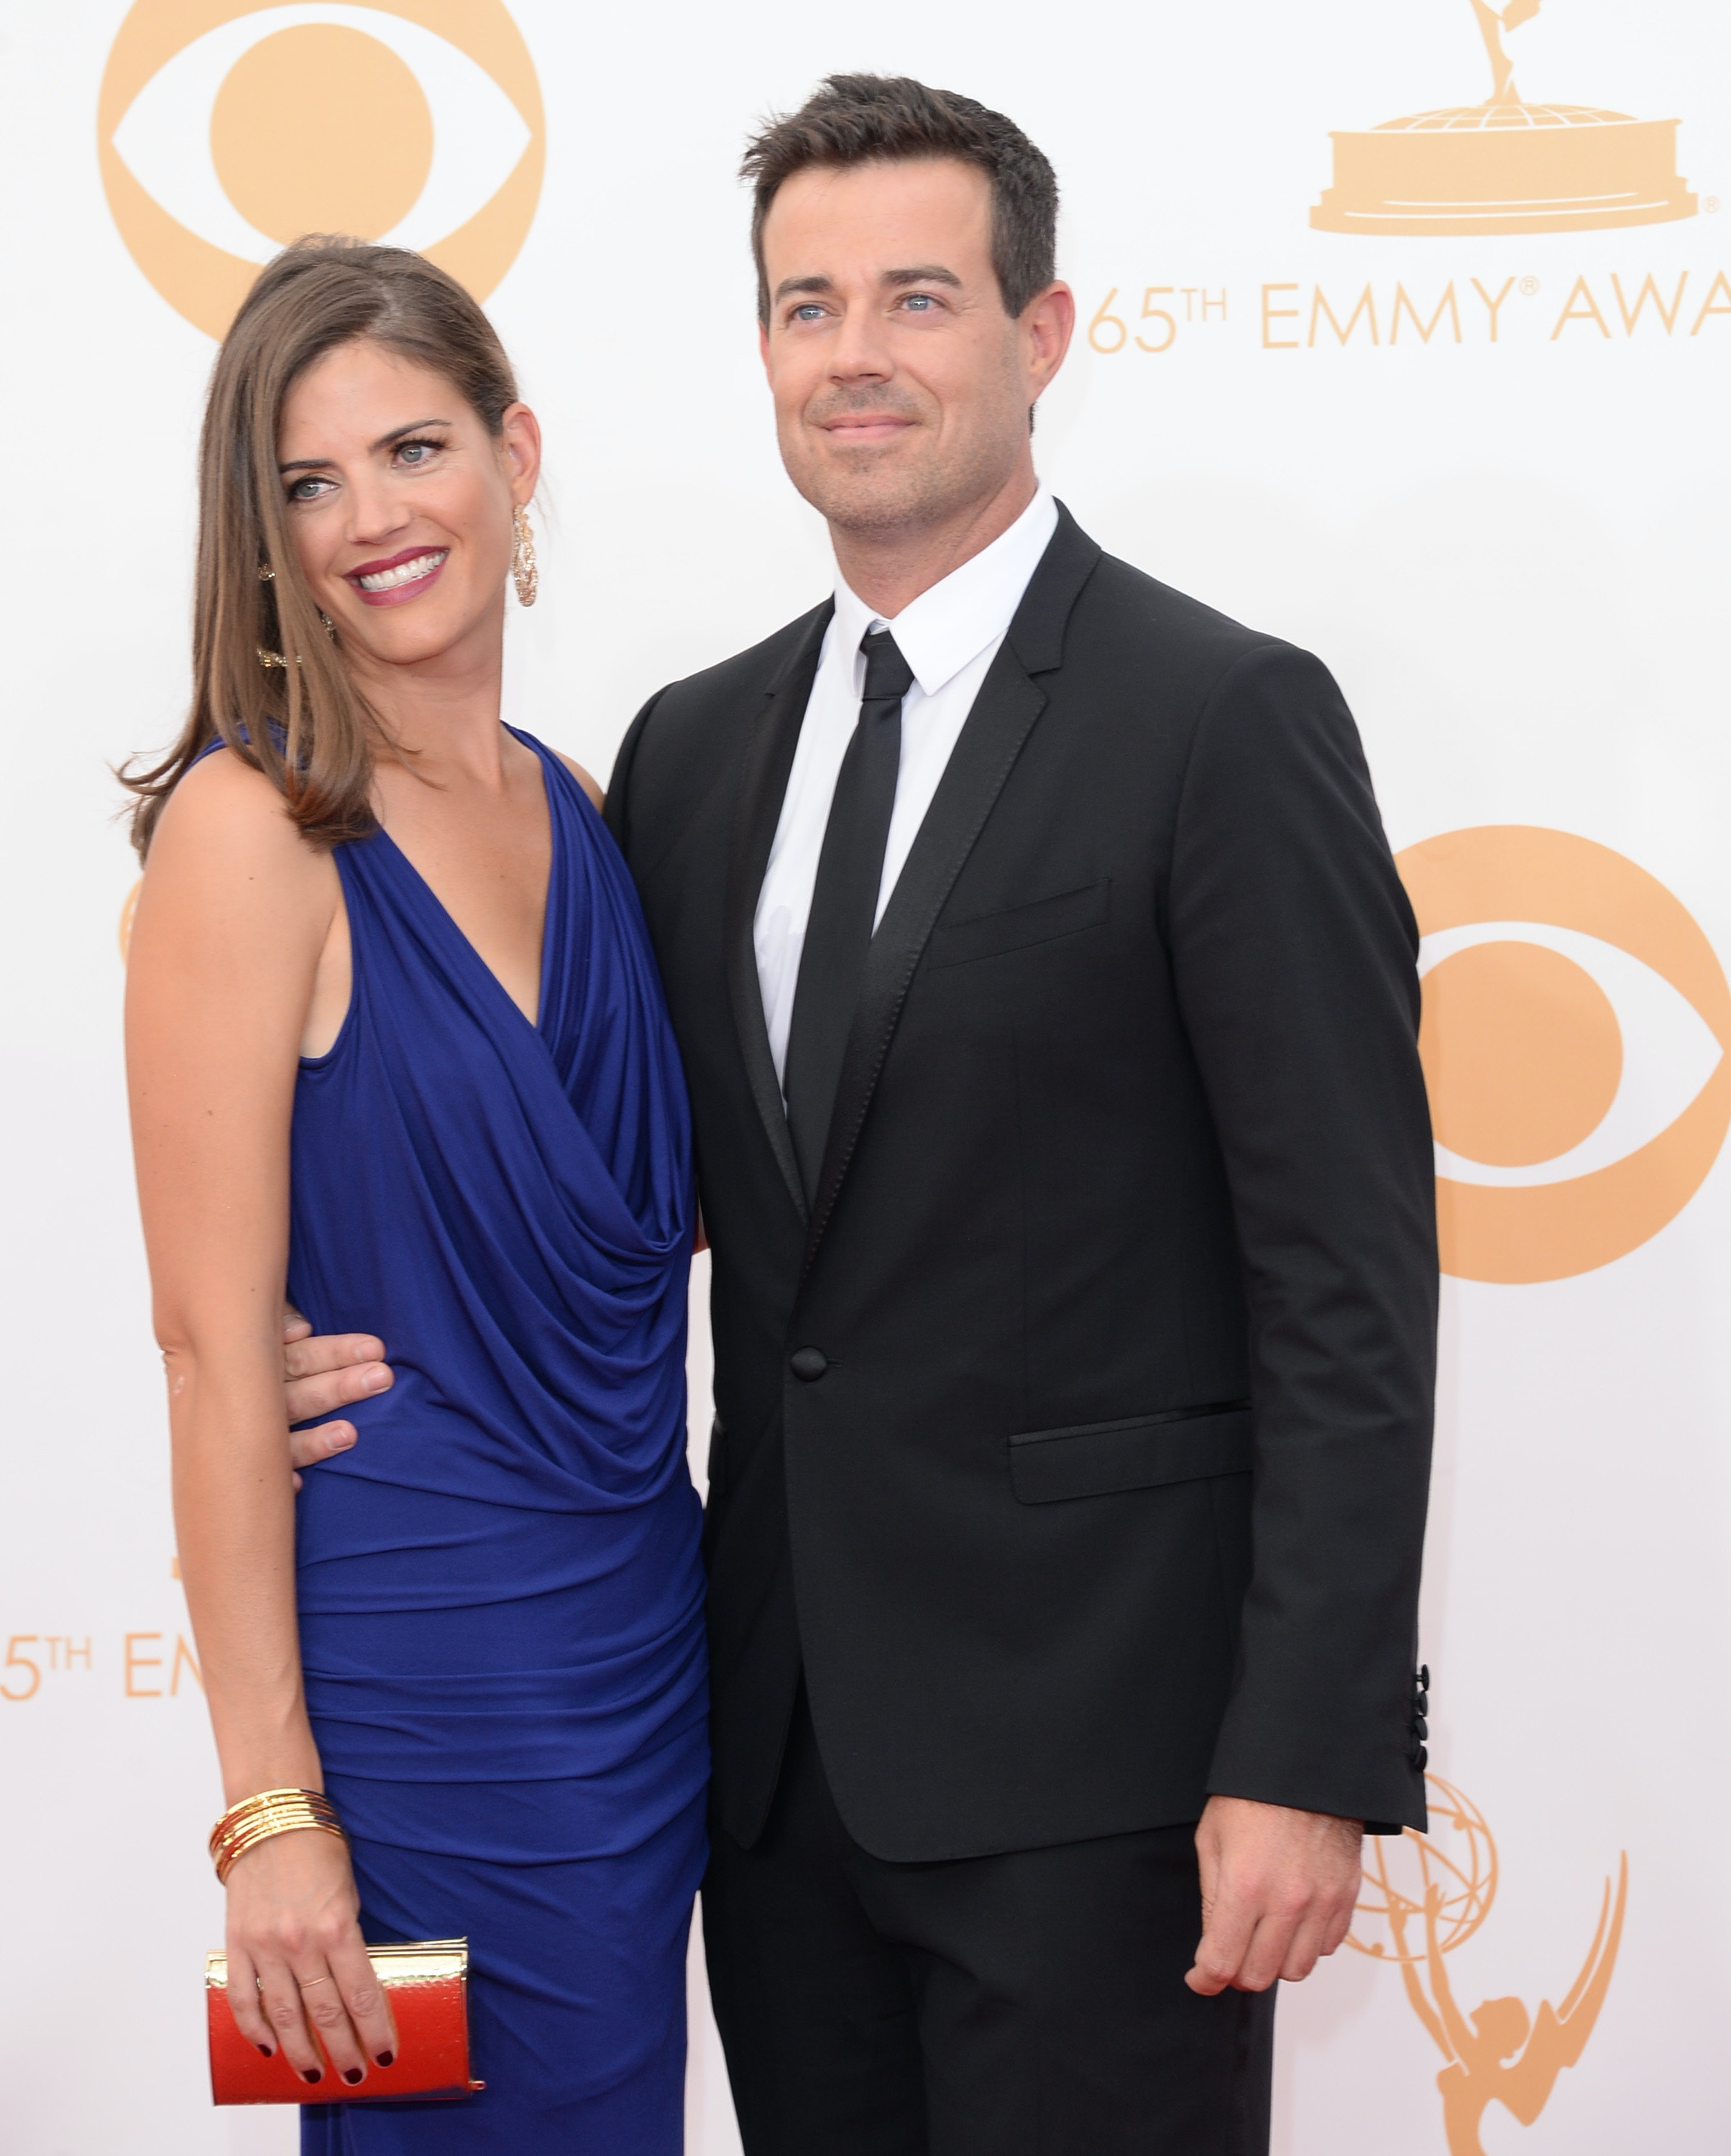 Carson daly dating life